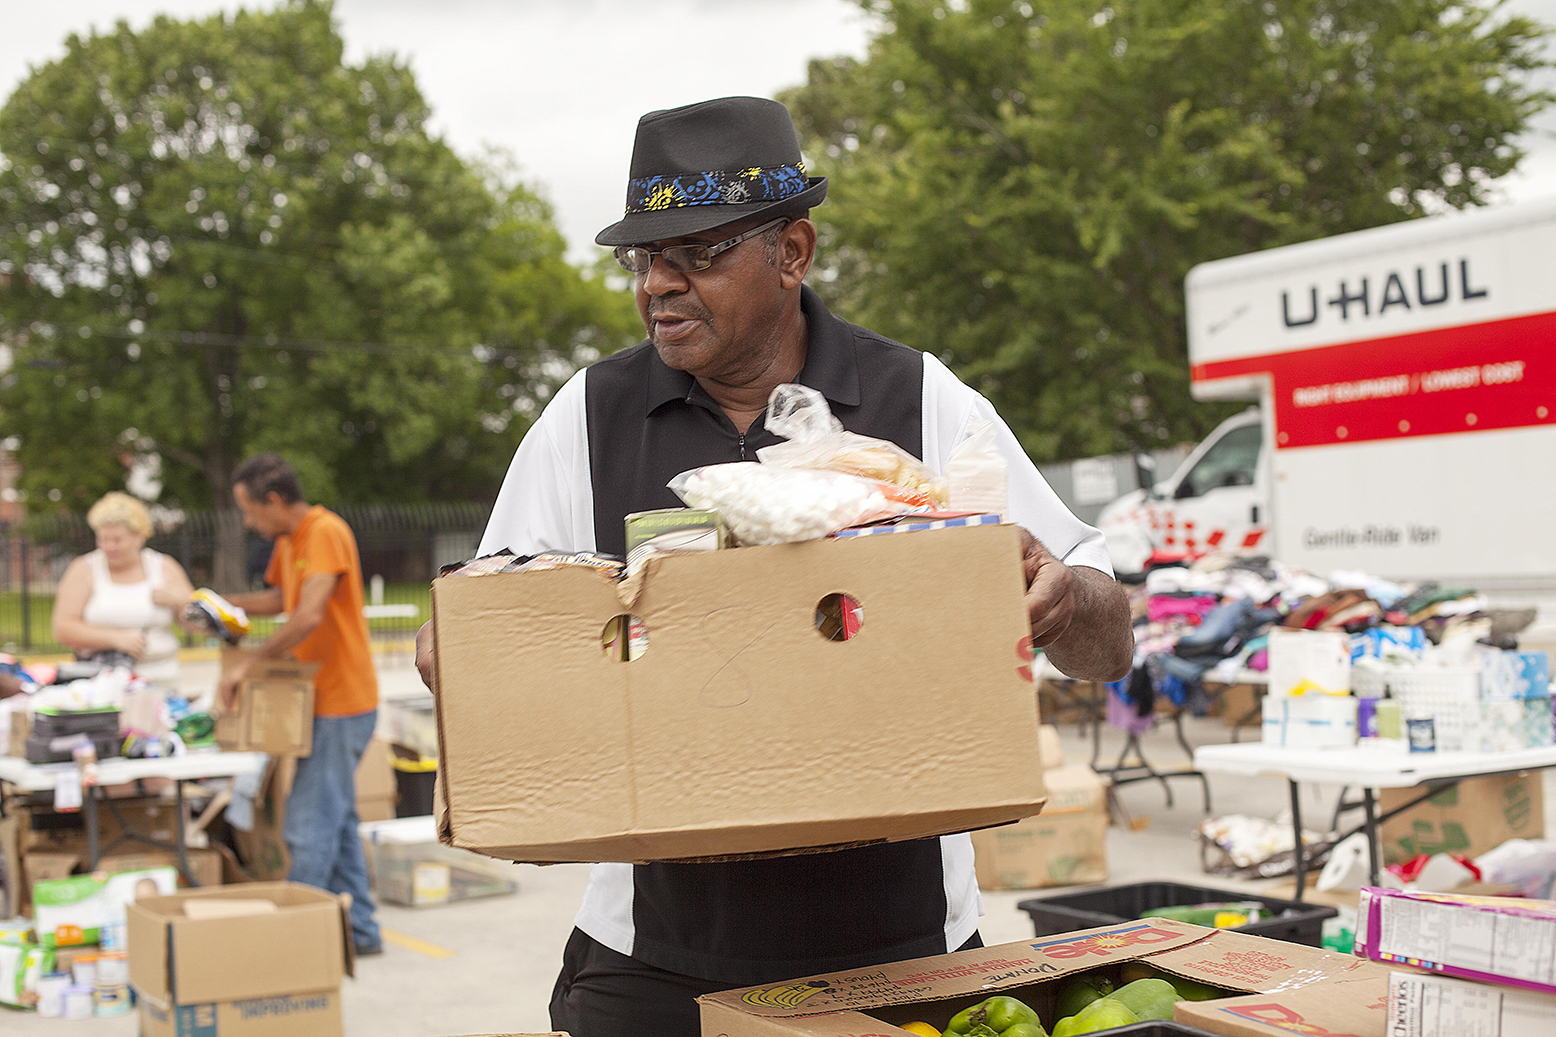 giving back open air ministries inregister